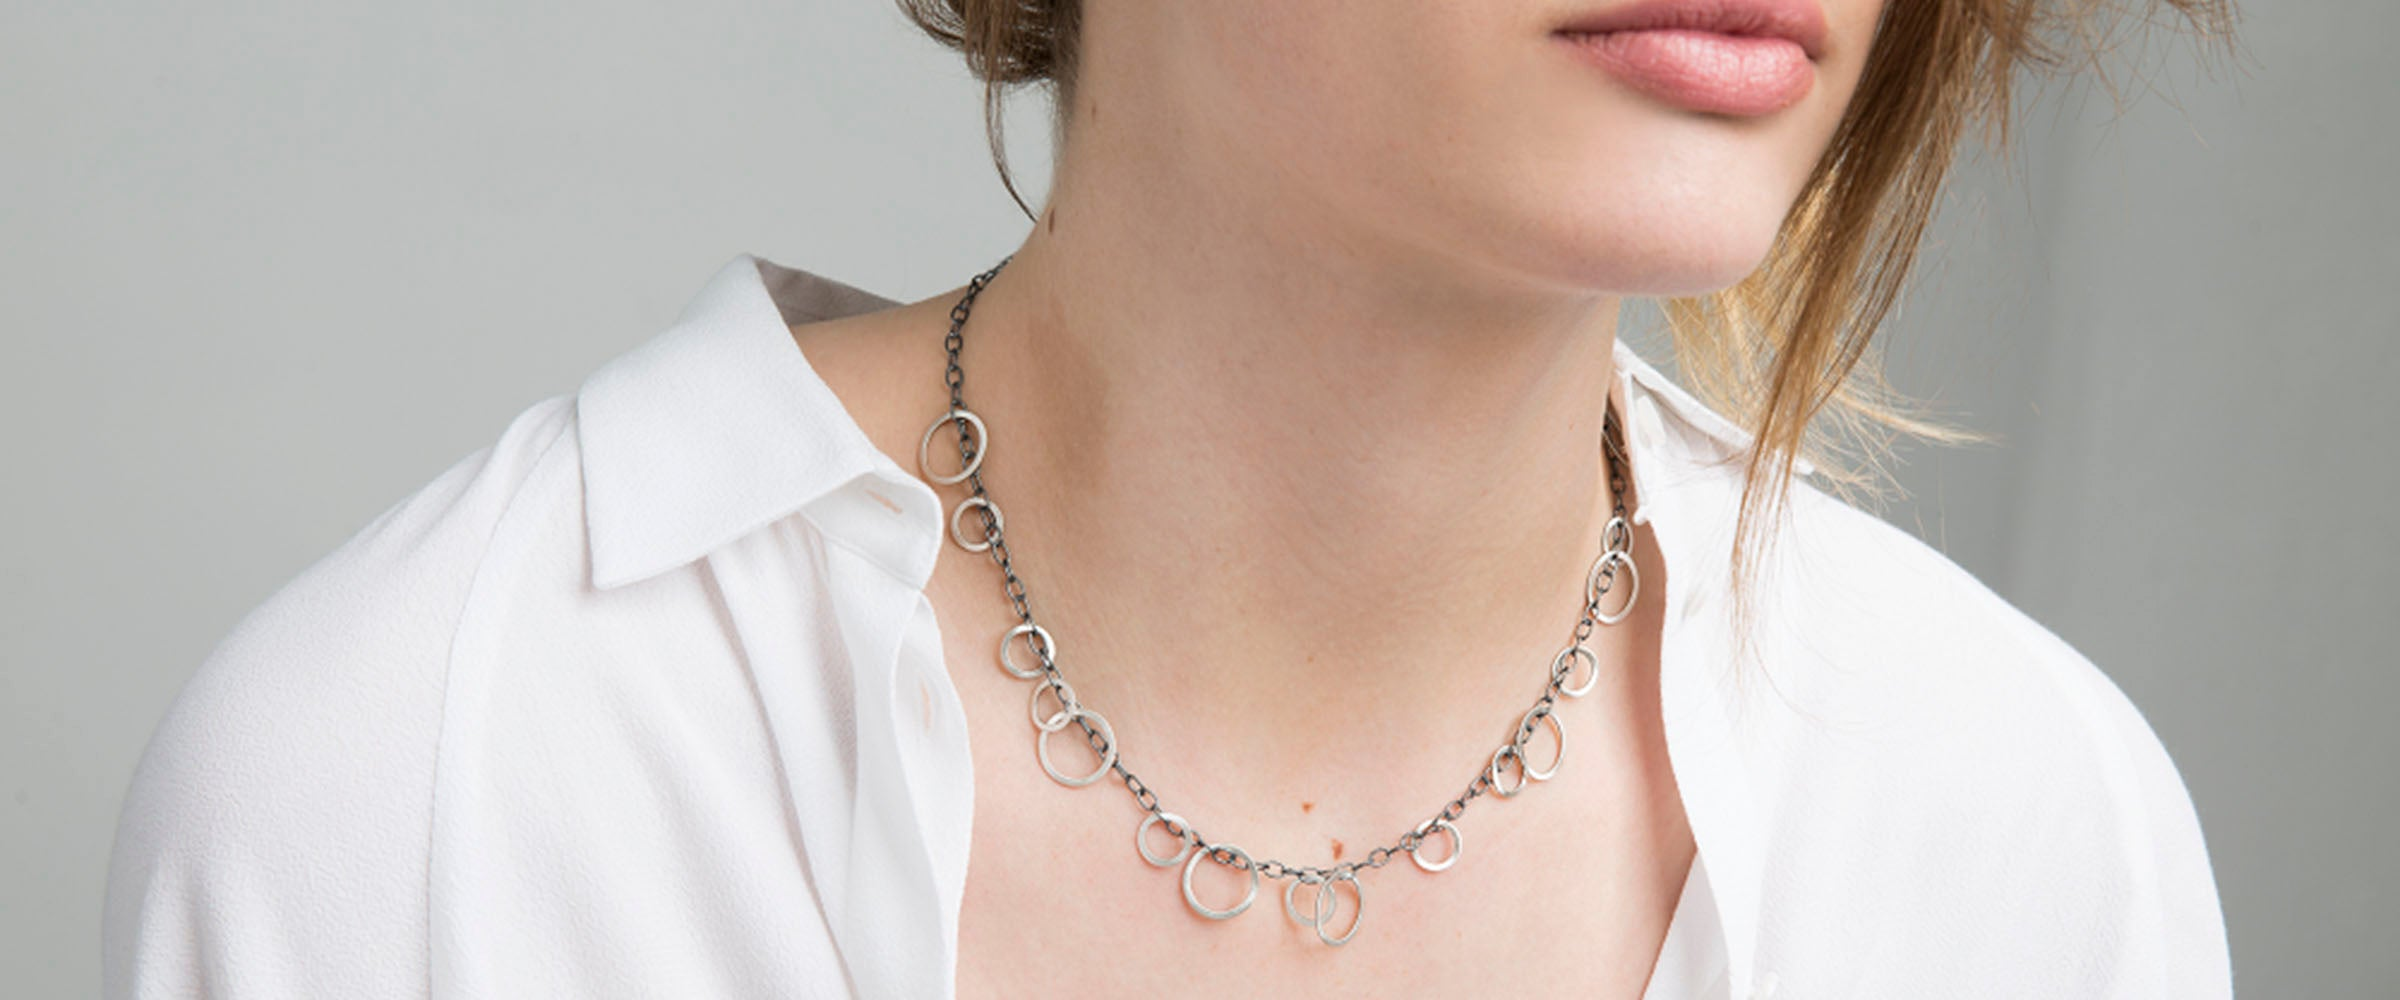 necklace on model